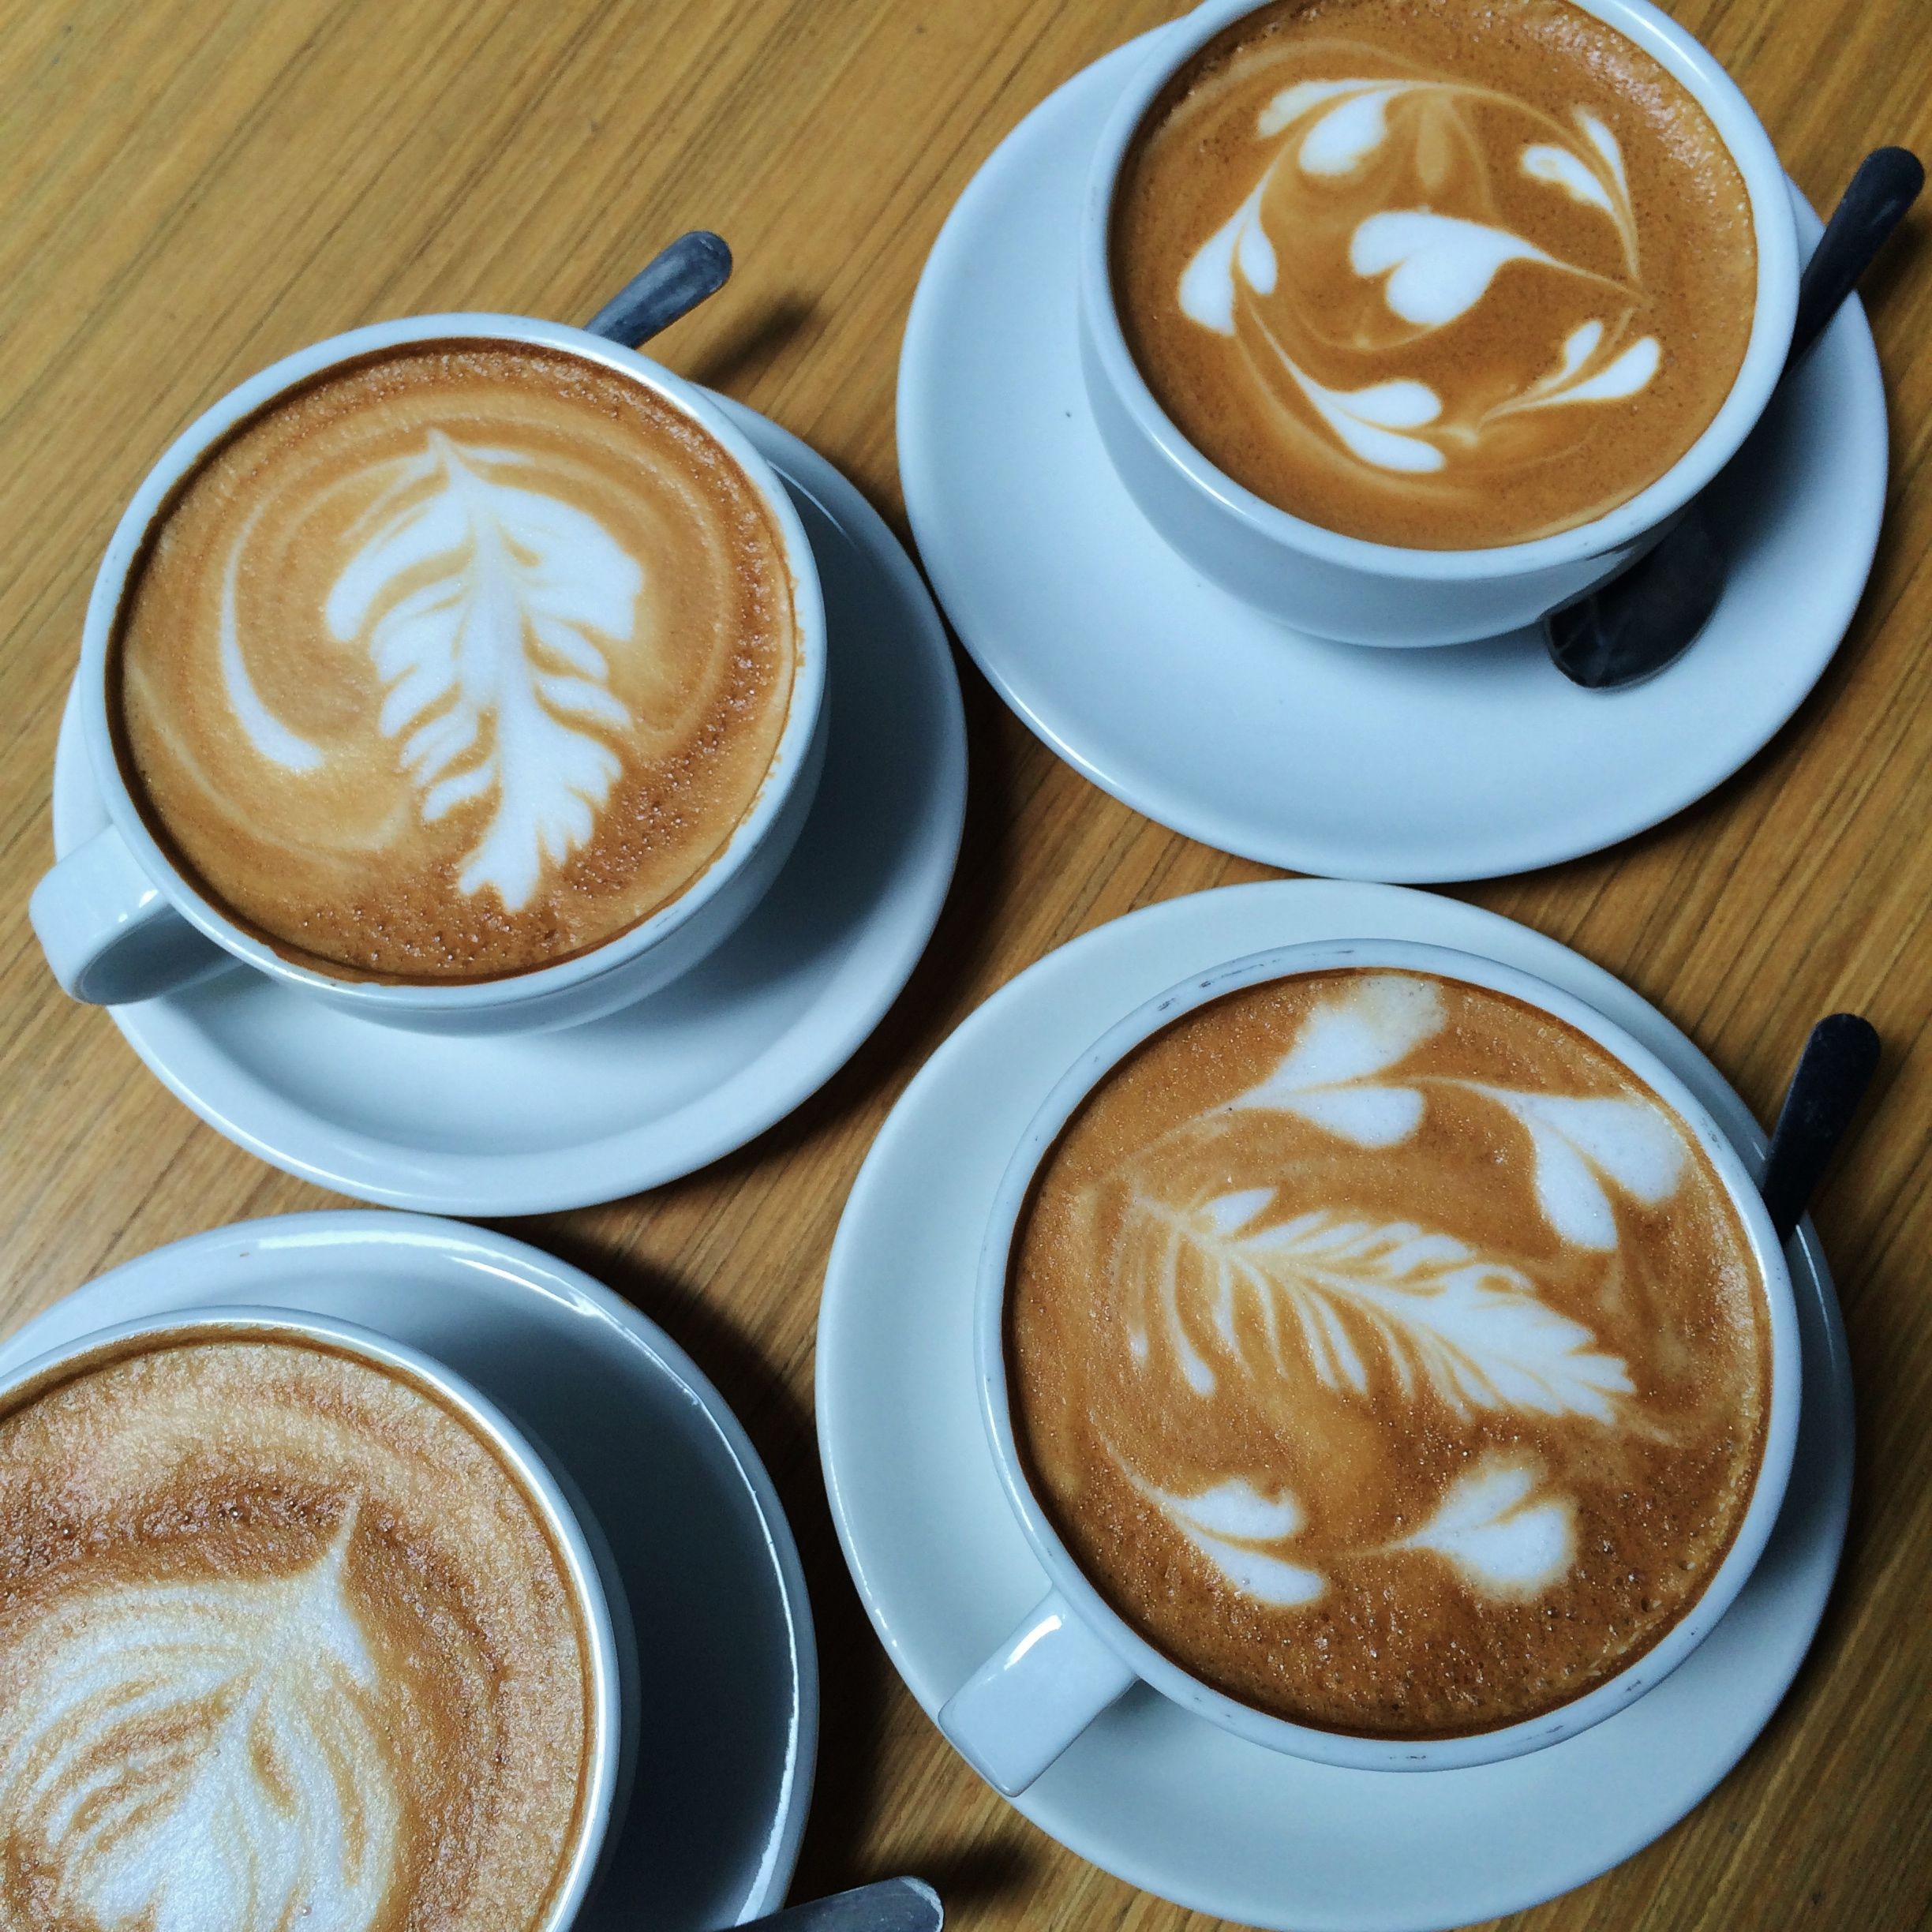 Feels like a 4-organic-coffees-kinda-day to ease into a new week + month! #coffeemotivation #HelloAugust #coffeeart